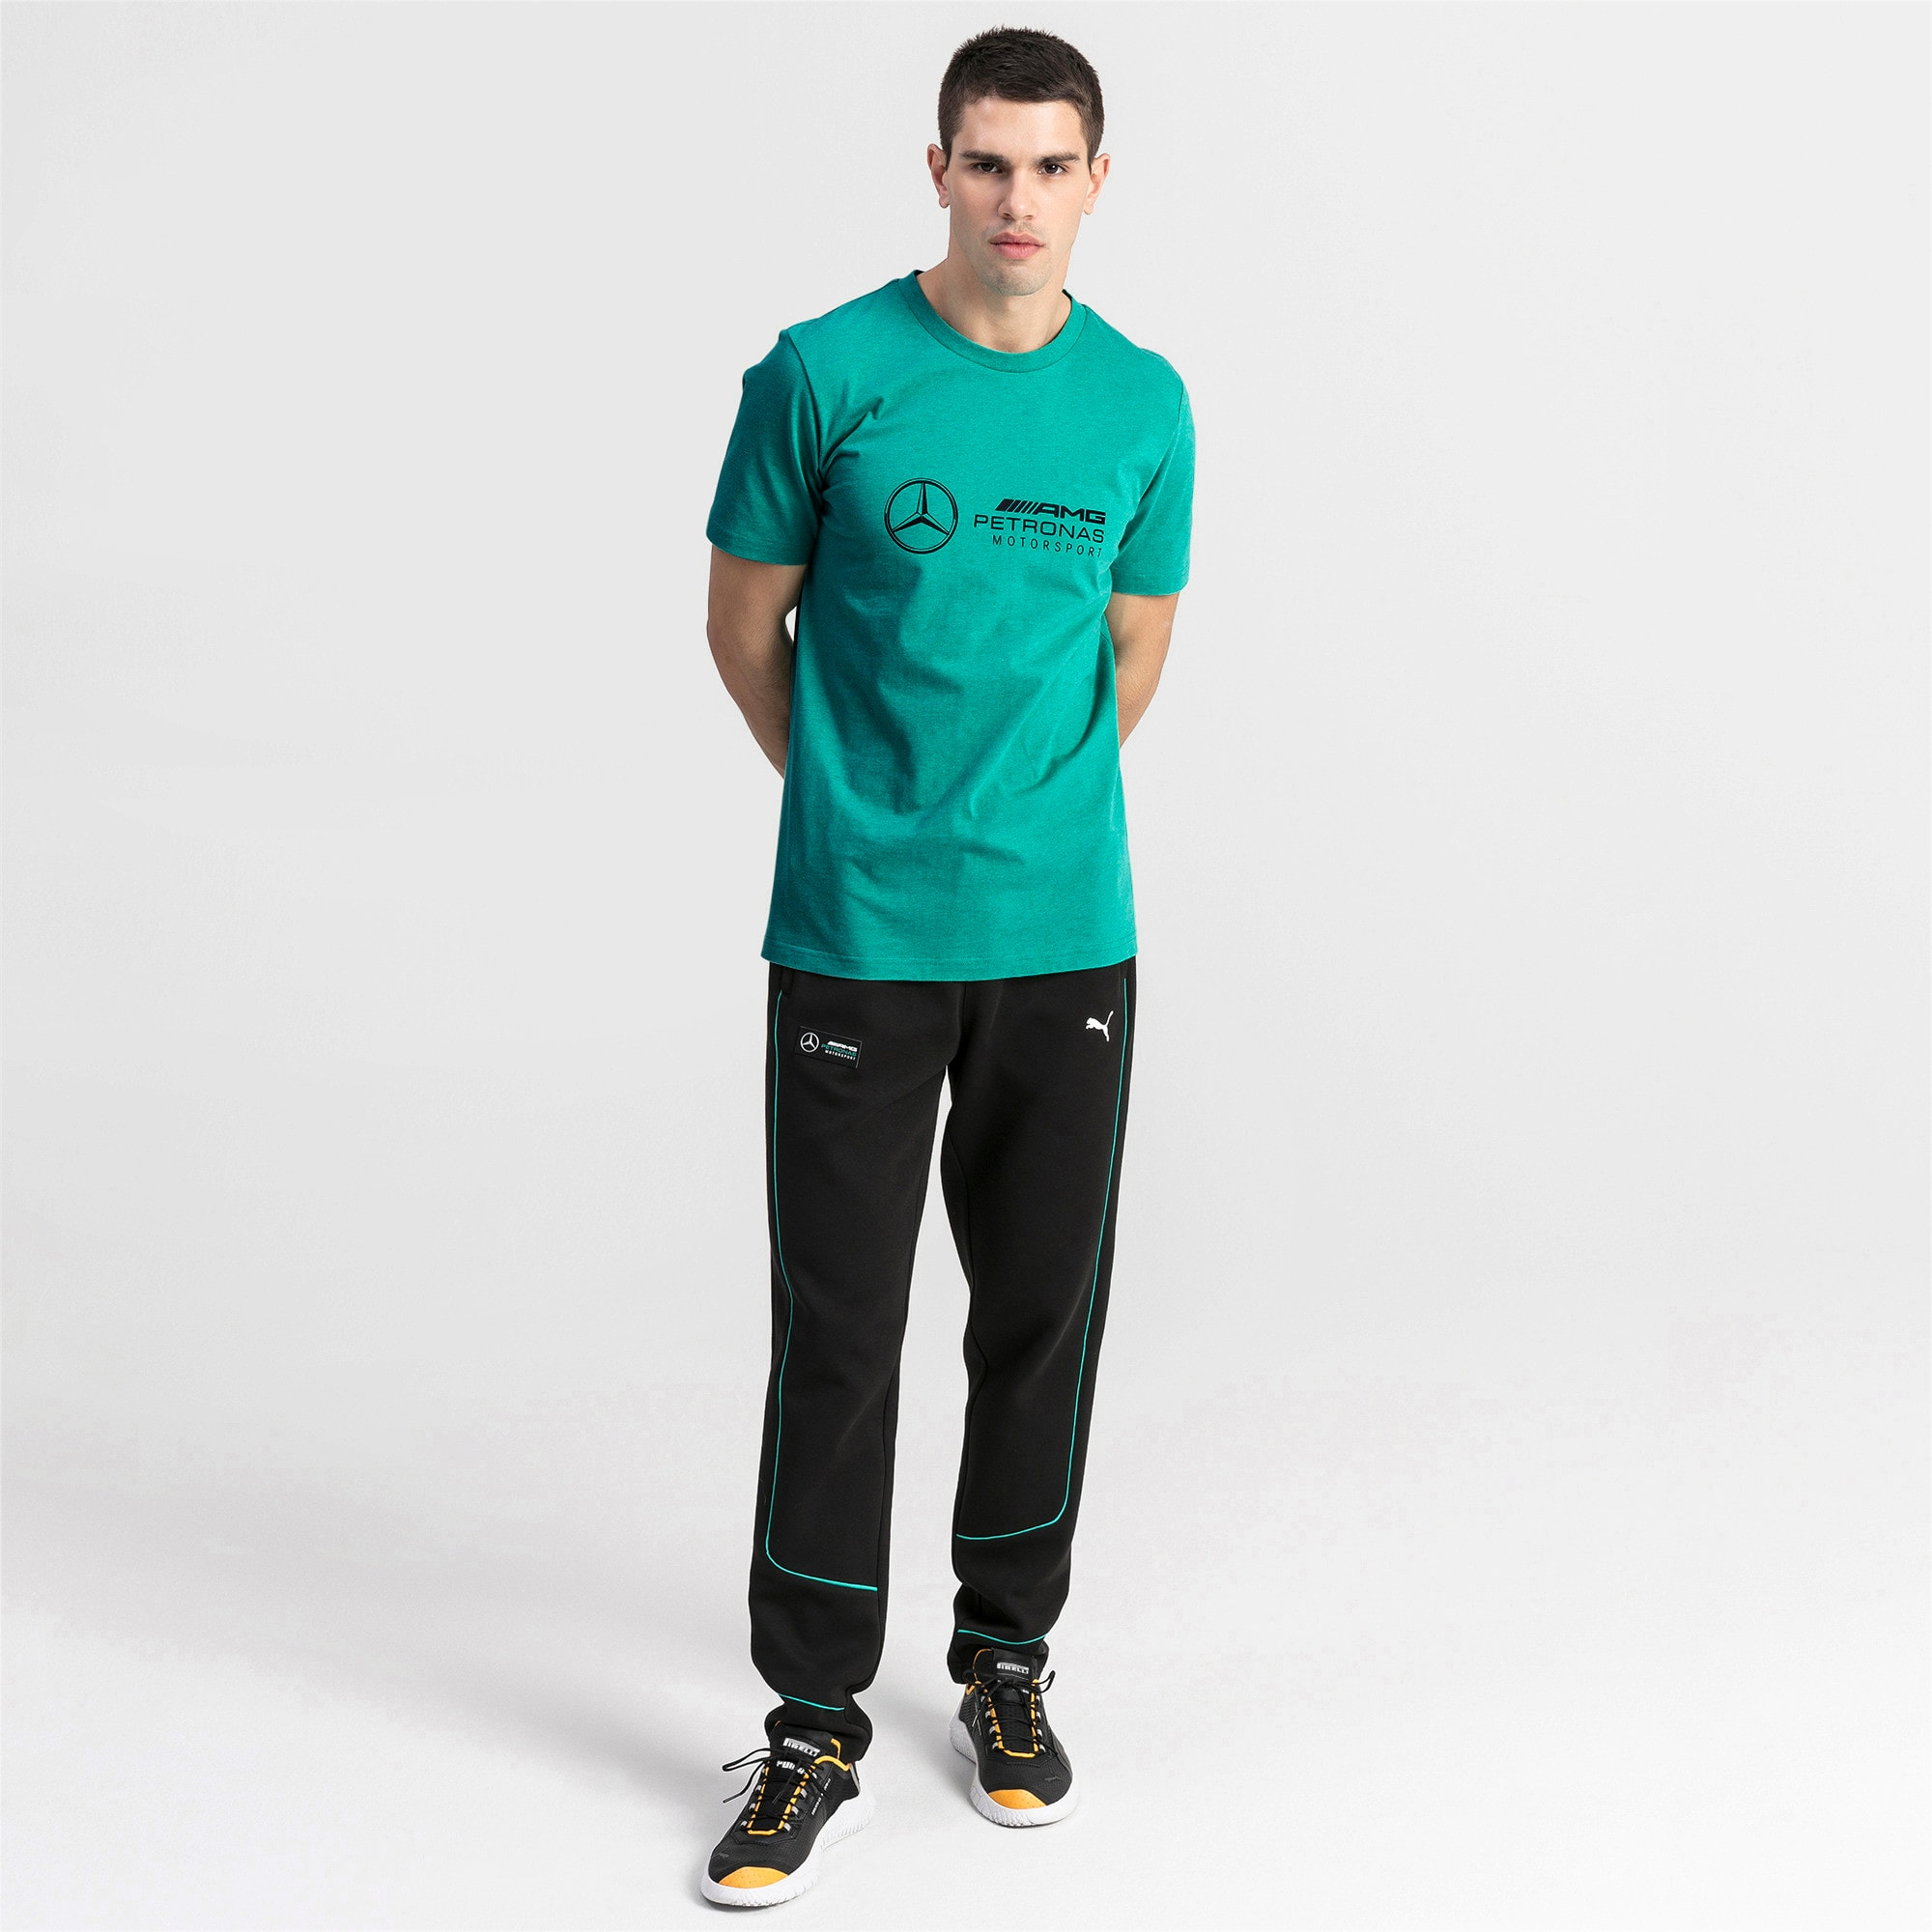 Thumbnail 3 of T-shirt Mercedes AMG Petronas uomo, Spectra Green Heather, medium